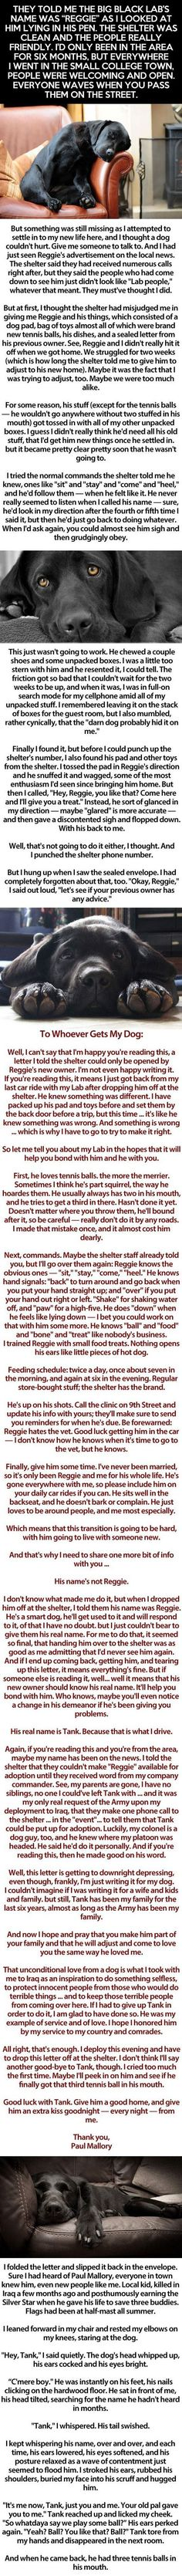 Story about Tank the dog.